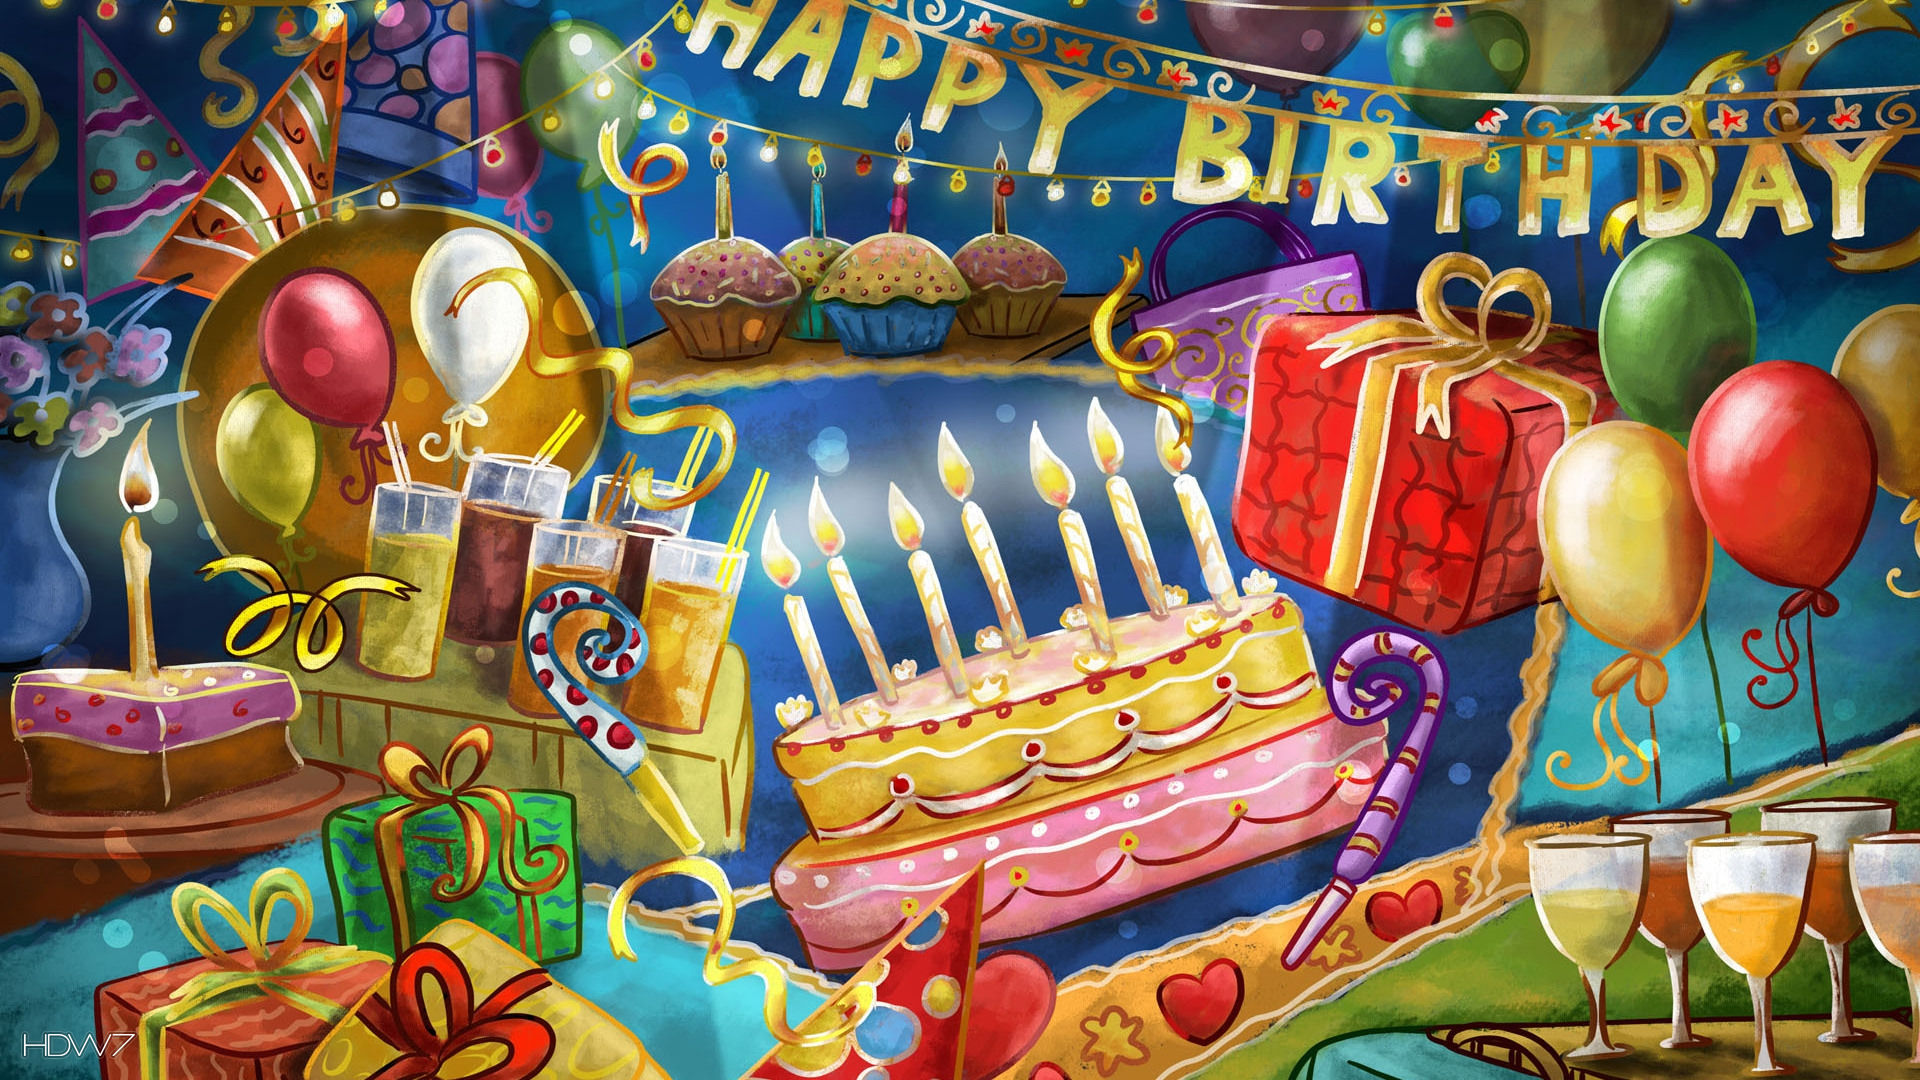 Happy Birthday Balloons And Cake Images amp Pictures Becuo